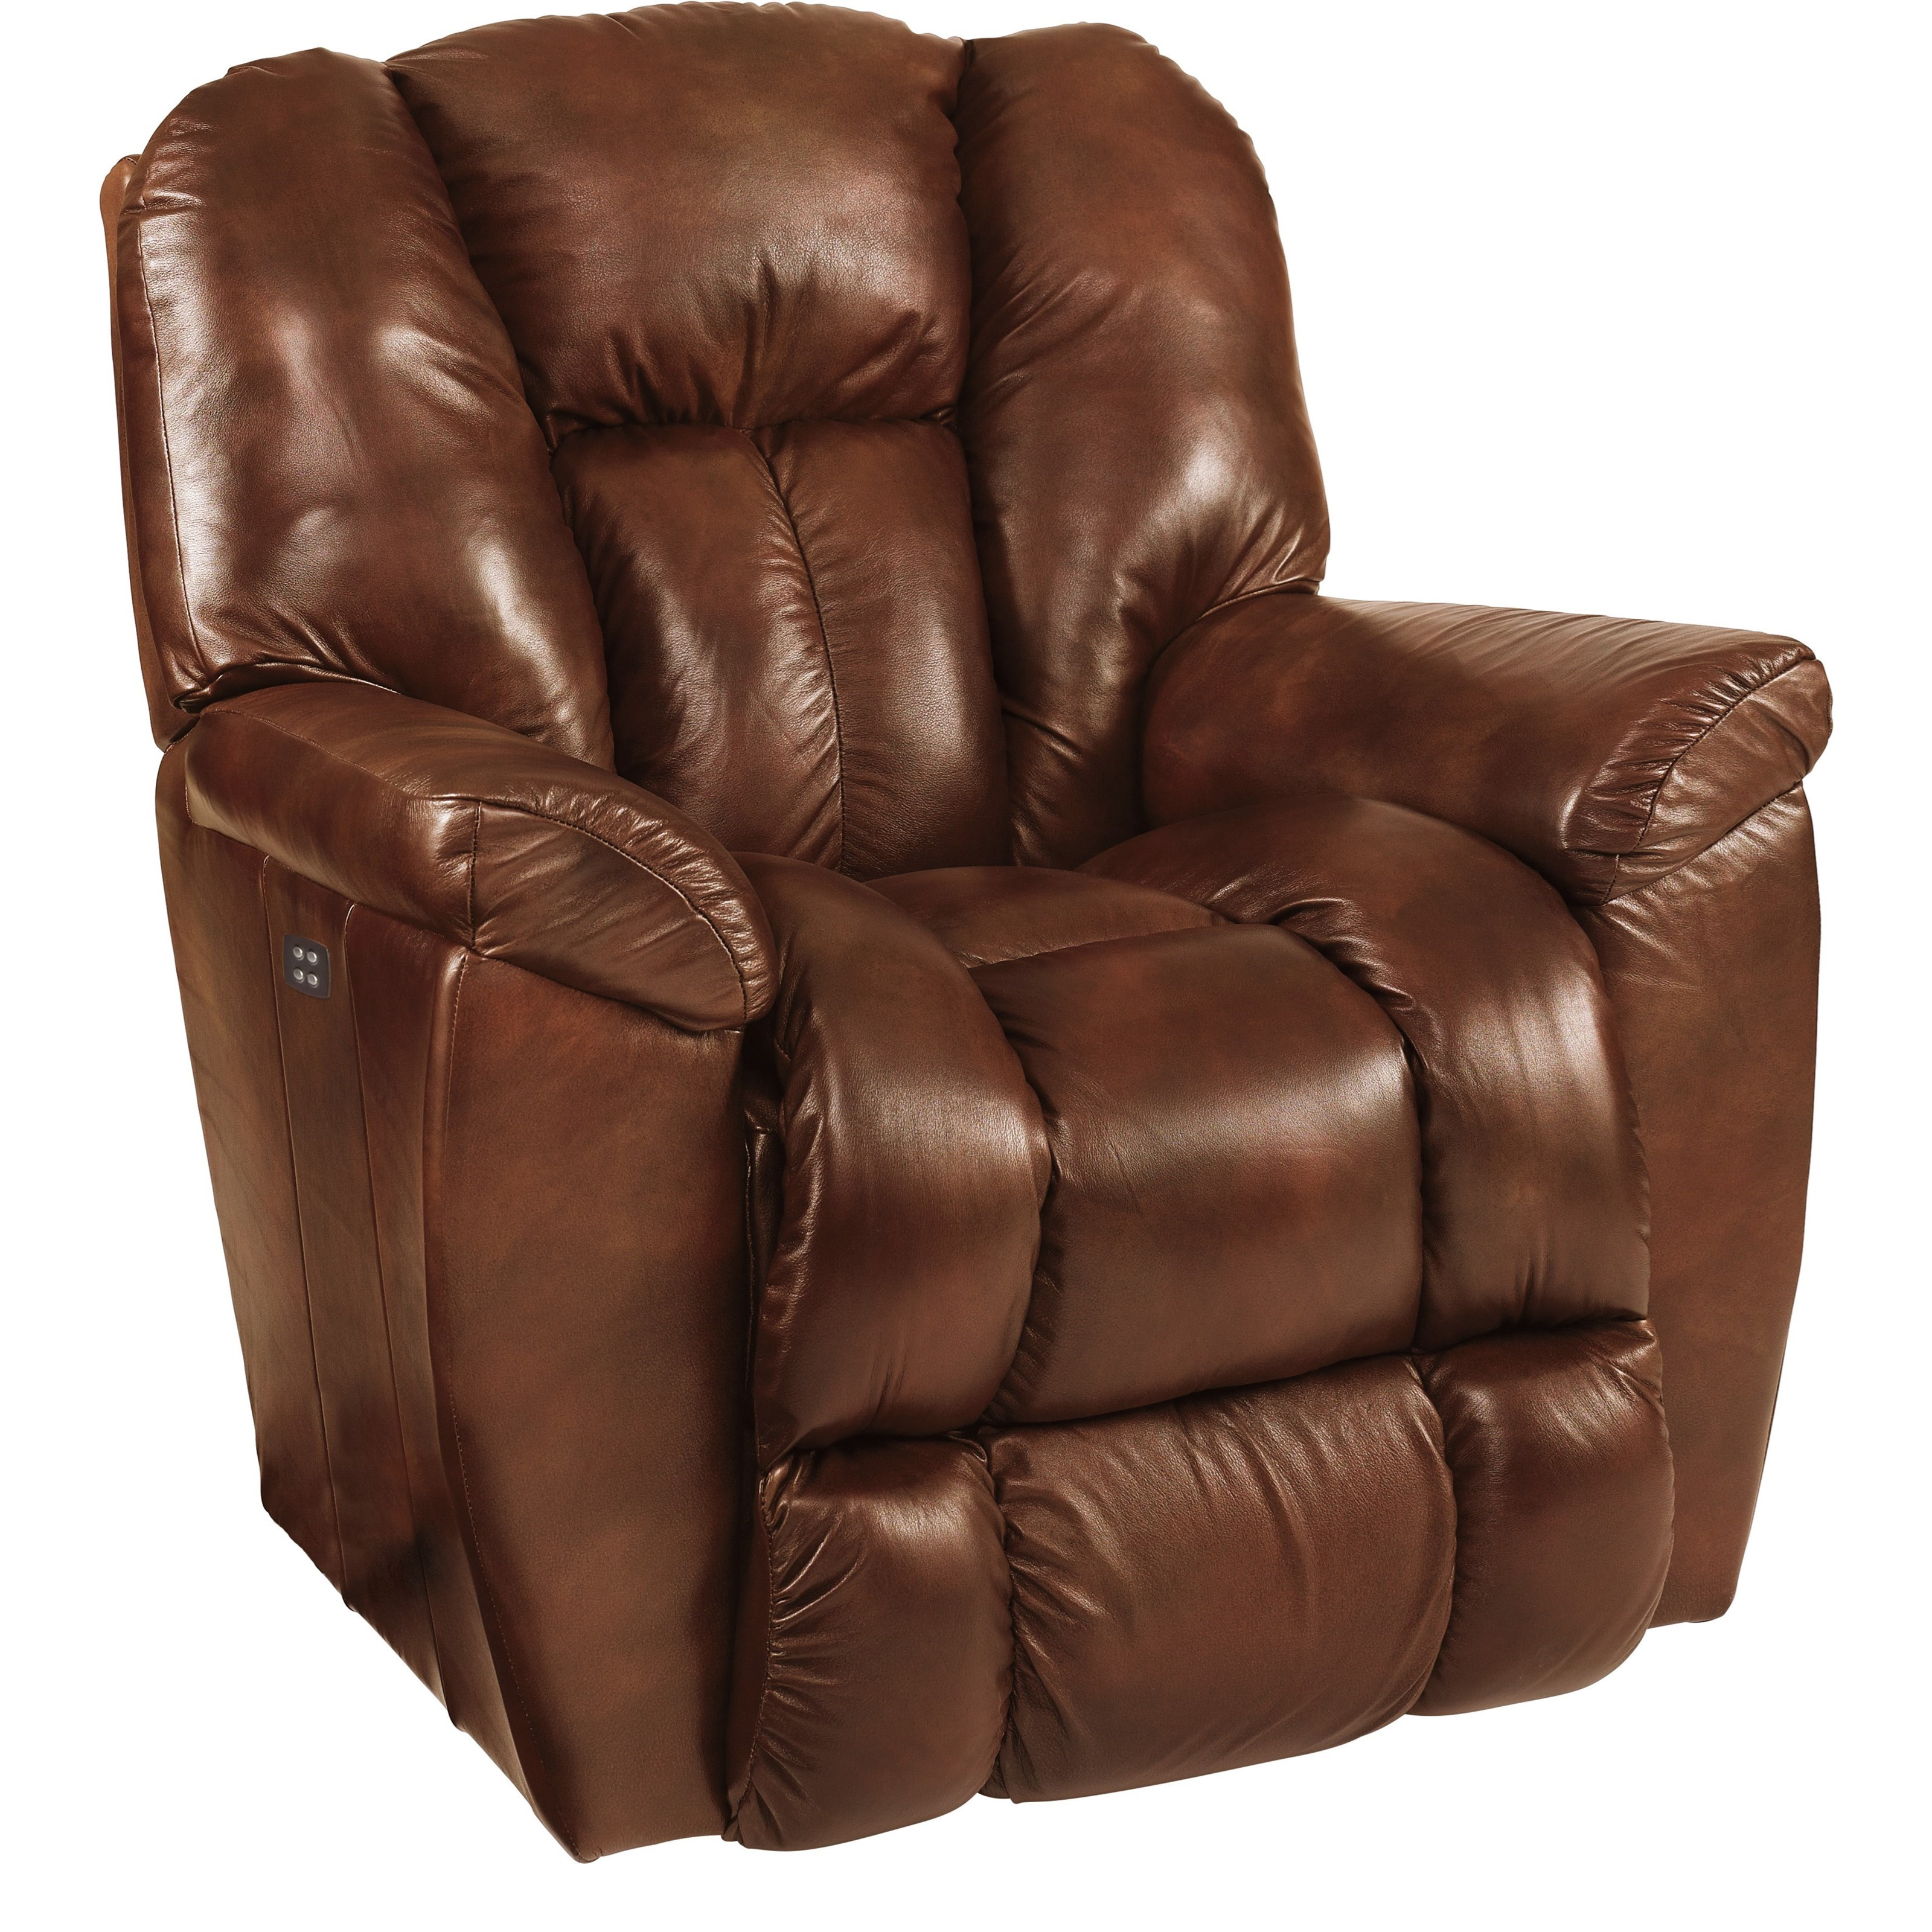 Maverick Power Recliner by La-Z-Boy at VanDrie Home Furnishings